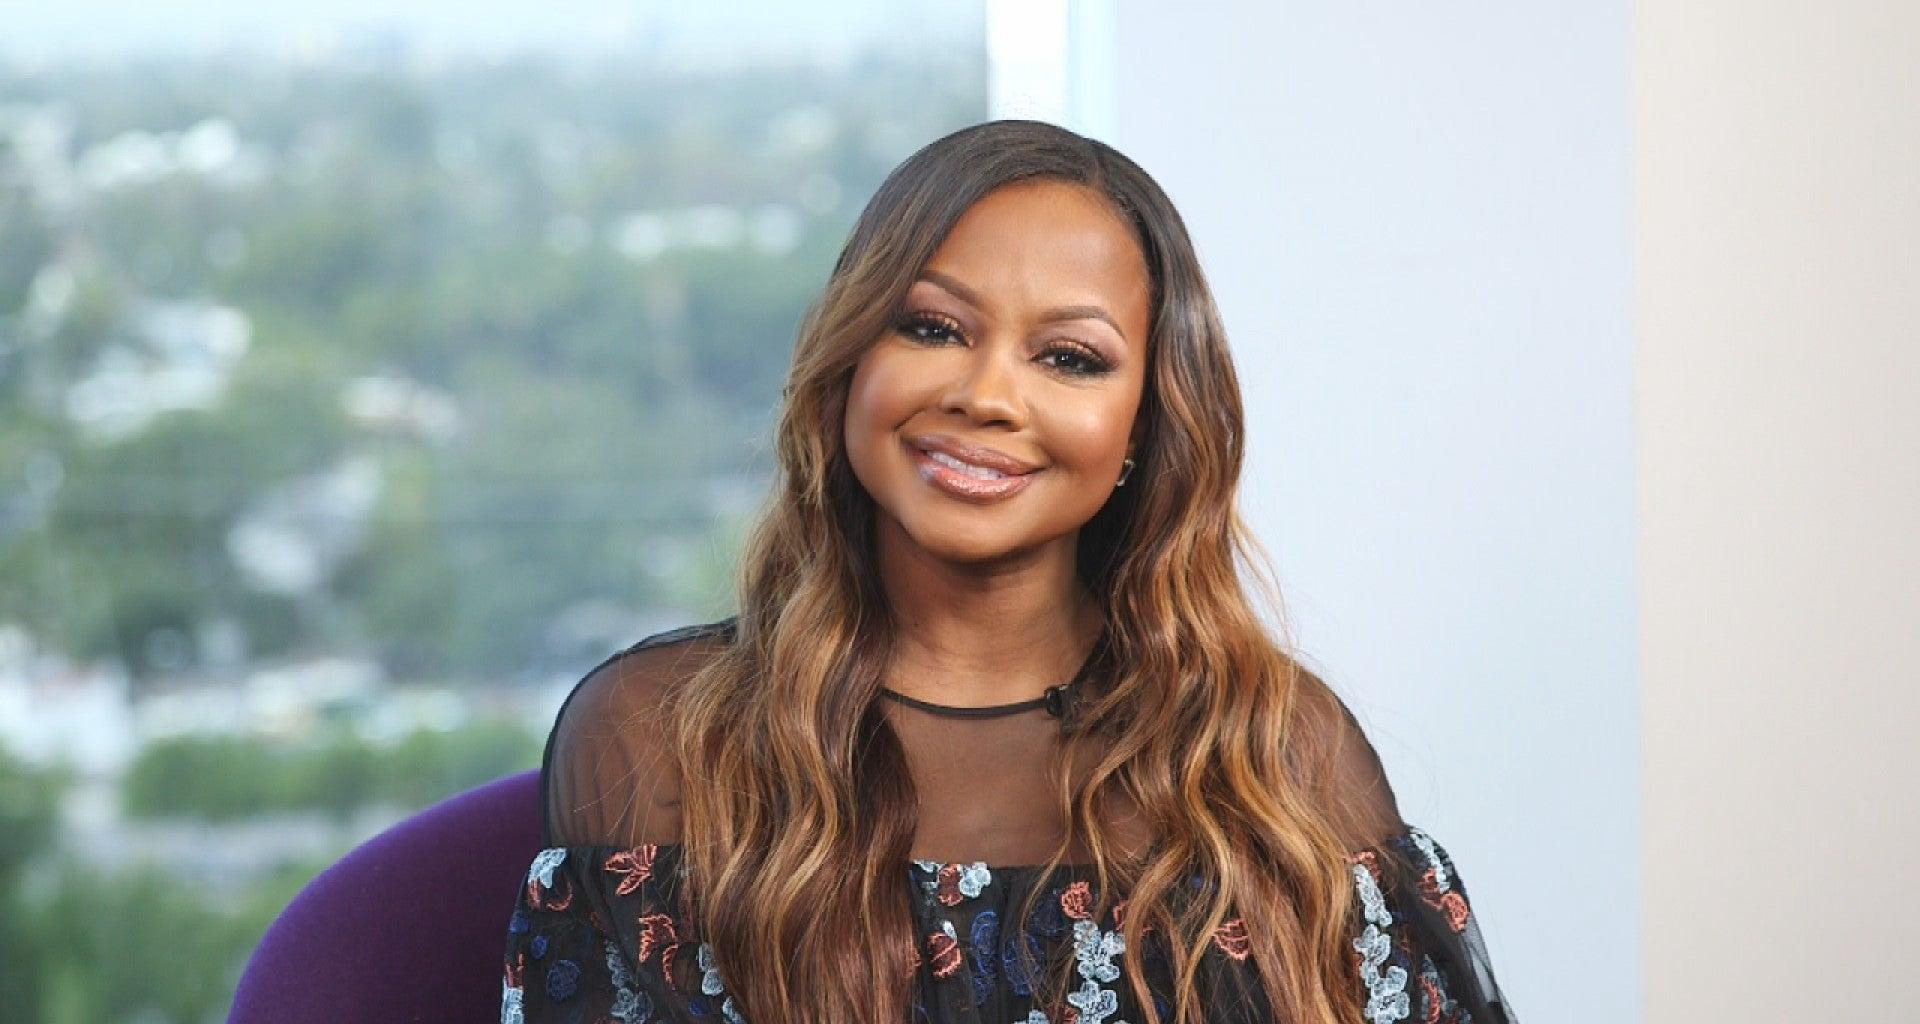 Phaedra Parks Impresses Fans With A Photo From 2020 Before Coronavirus Halted The World